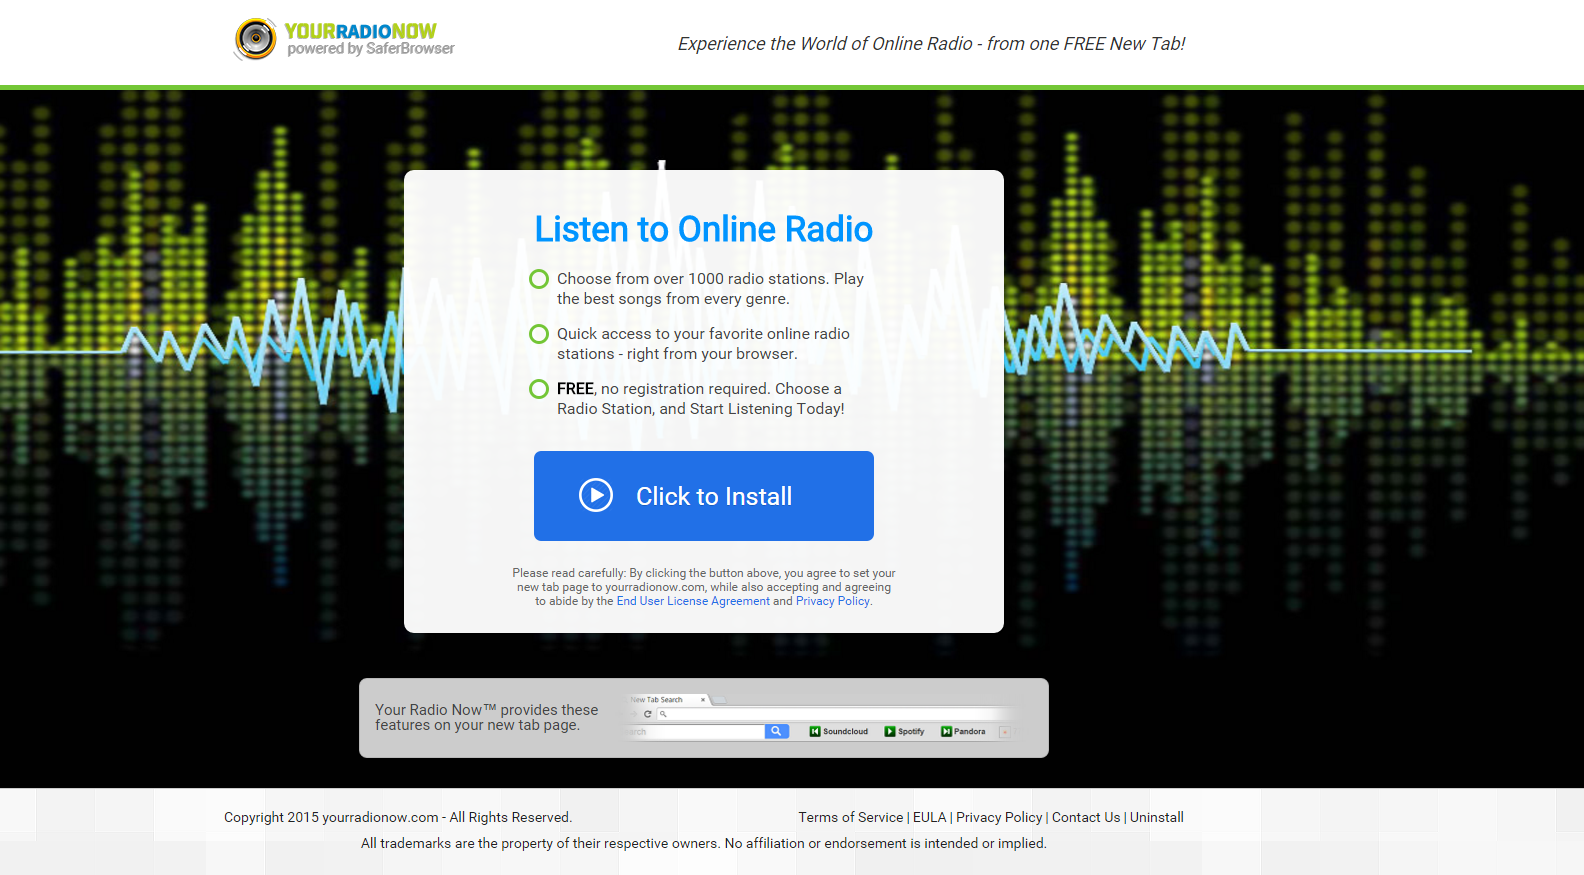 ads by YourRadioNow